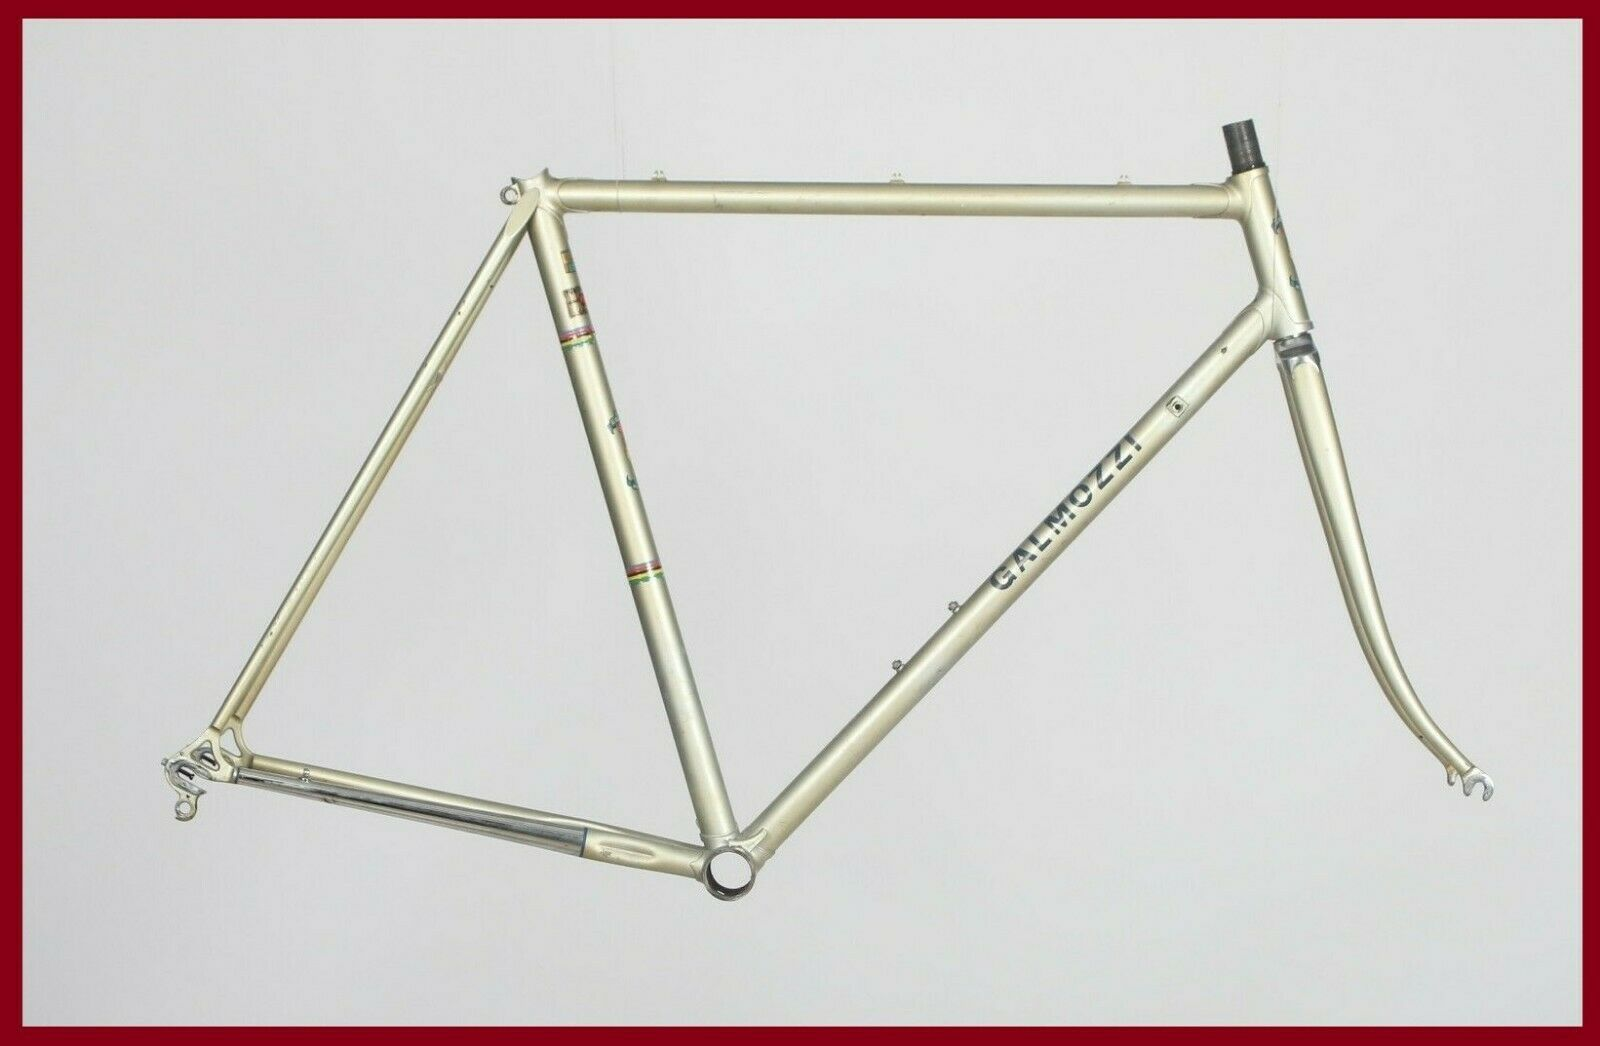 GALMOZZI VINTAGE STEEL  FRAME SET FRAMESET CAMPAGNOLO ROAD BIKE BICYCLE 70s OLD  cheap and high quality